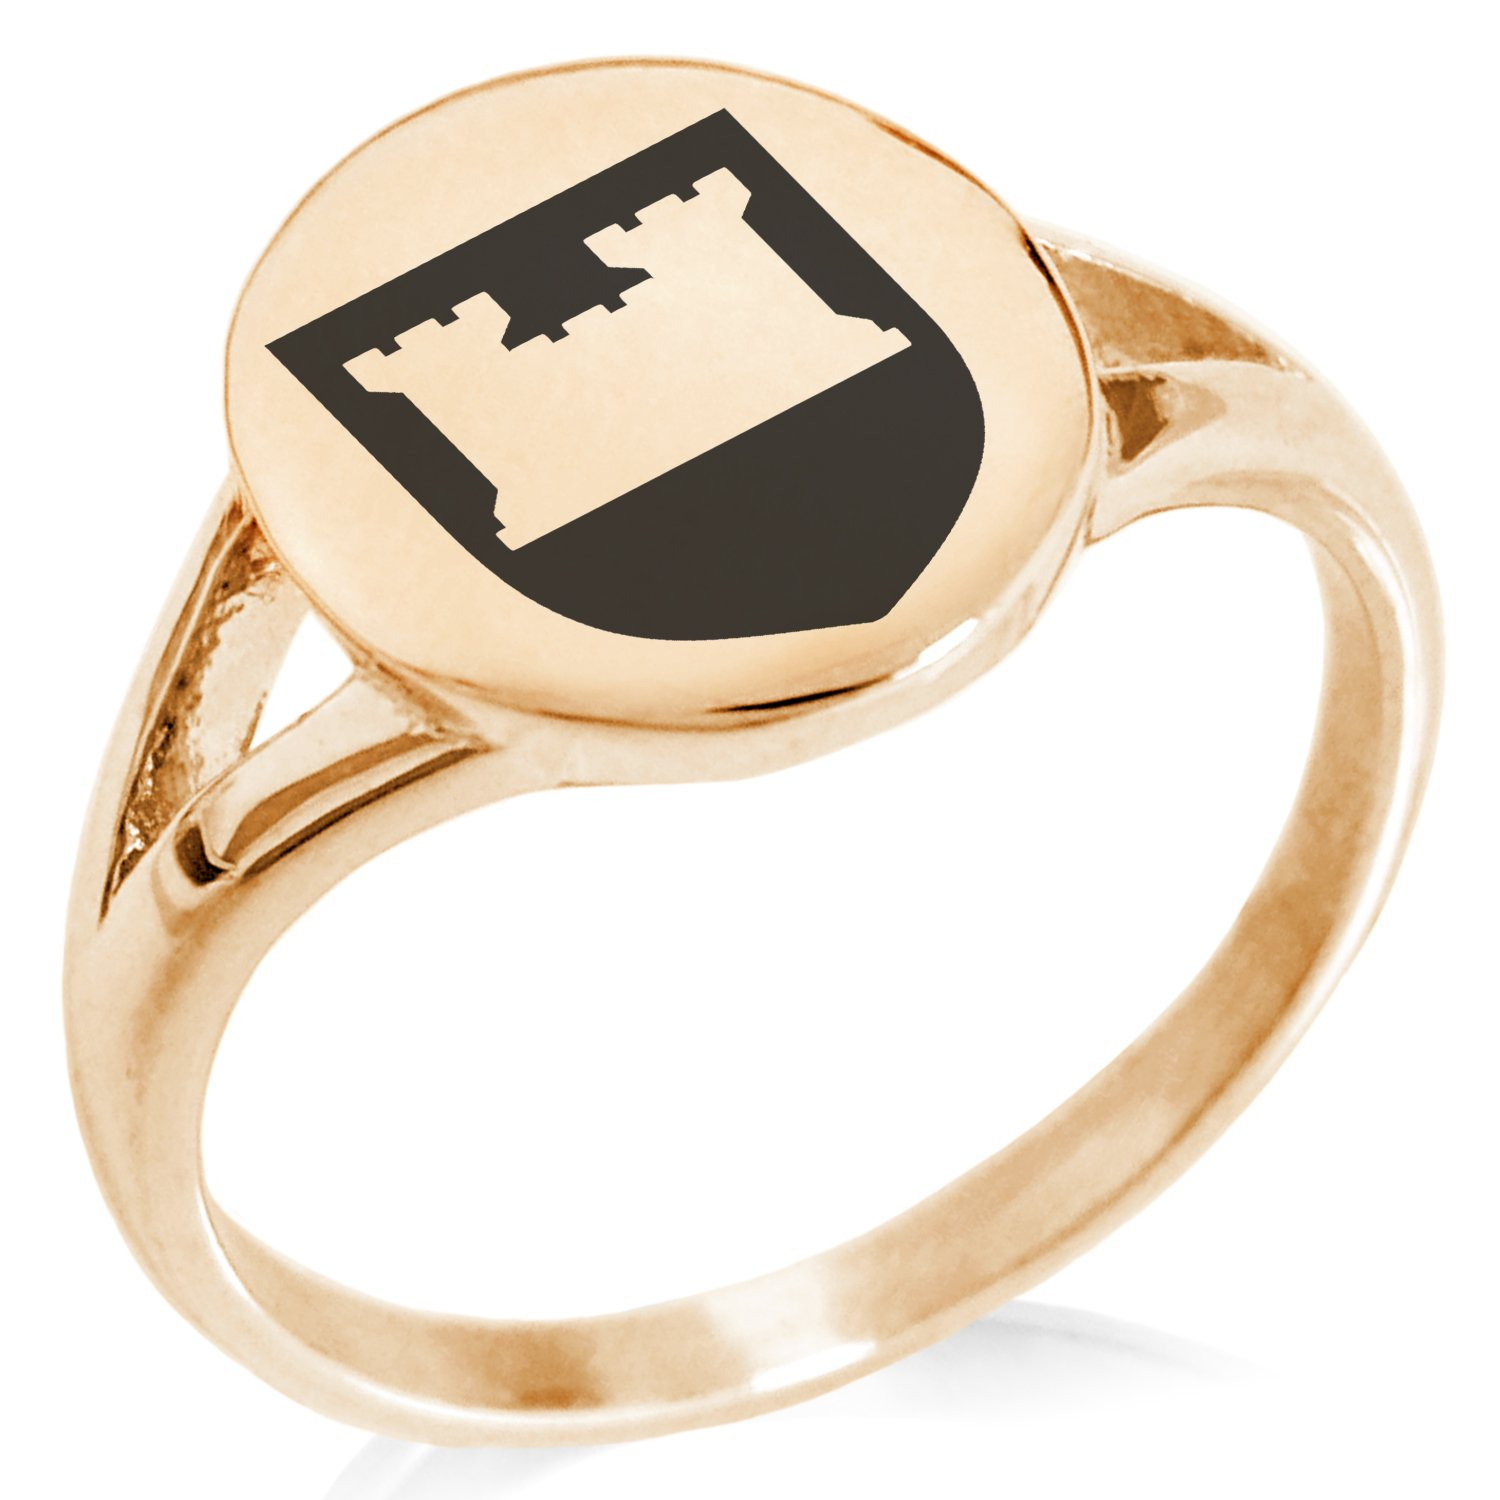 Tioneer Rose Gold Plated Stainless Steel Castle Protection Coat of Arms Shield Symbol Minimalist Oval Top Polished Statement Ring, Size 8